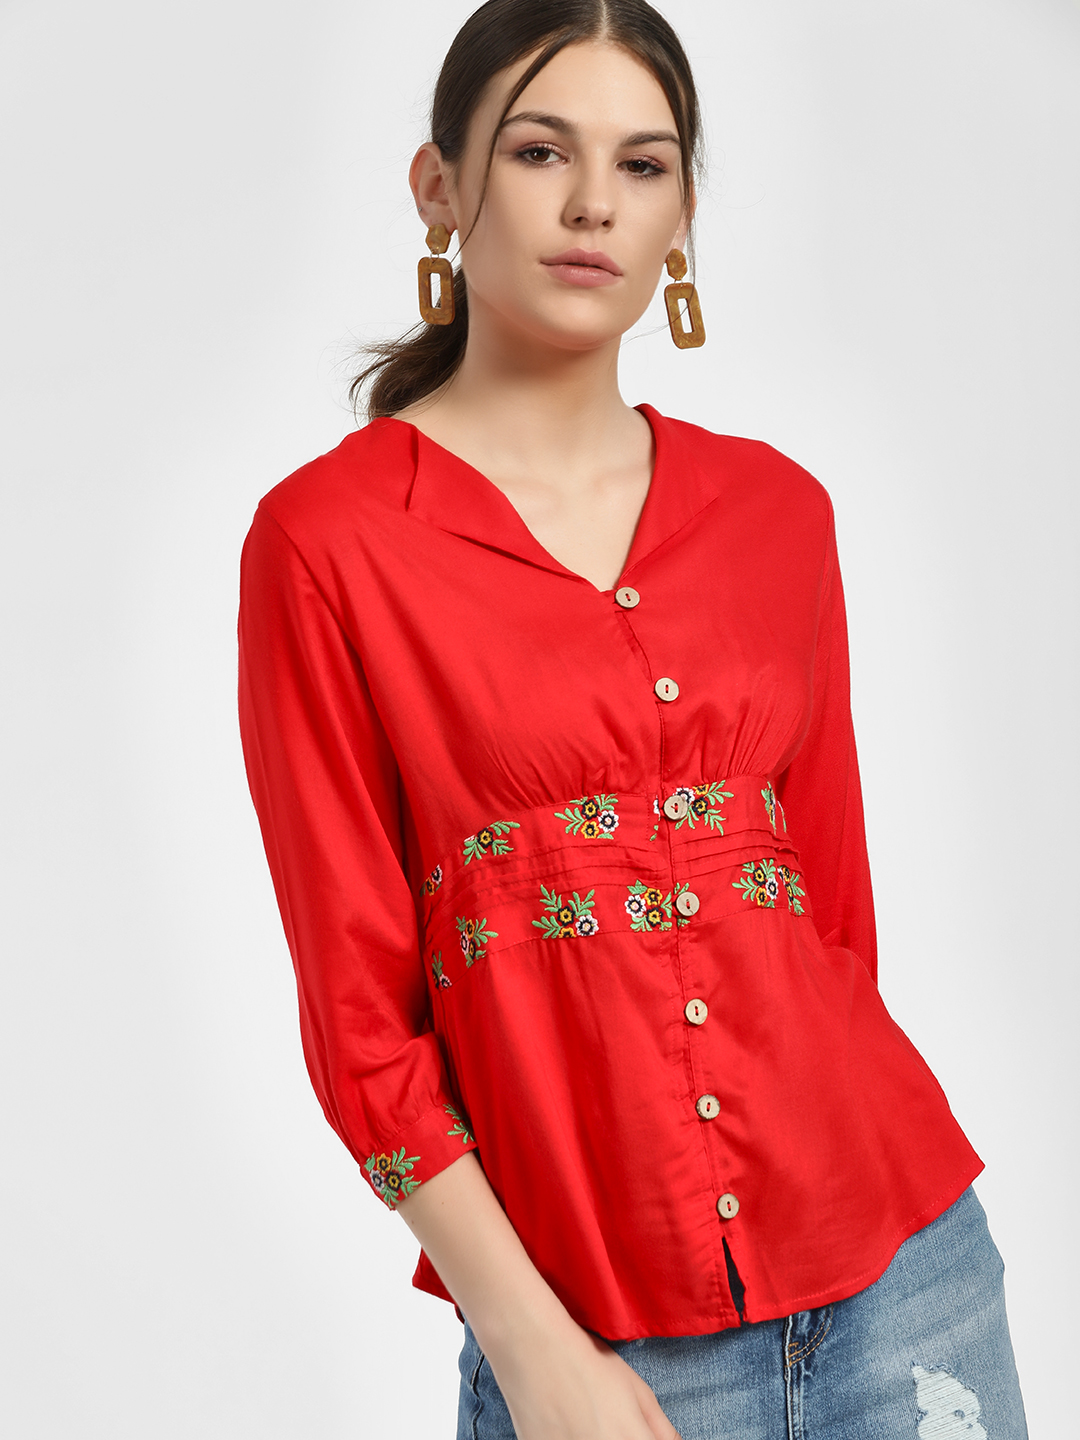 Rena Love Red Button Down Embroidered Blouse 1